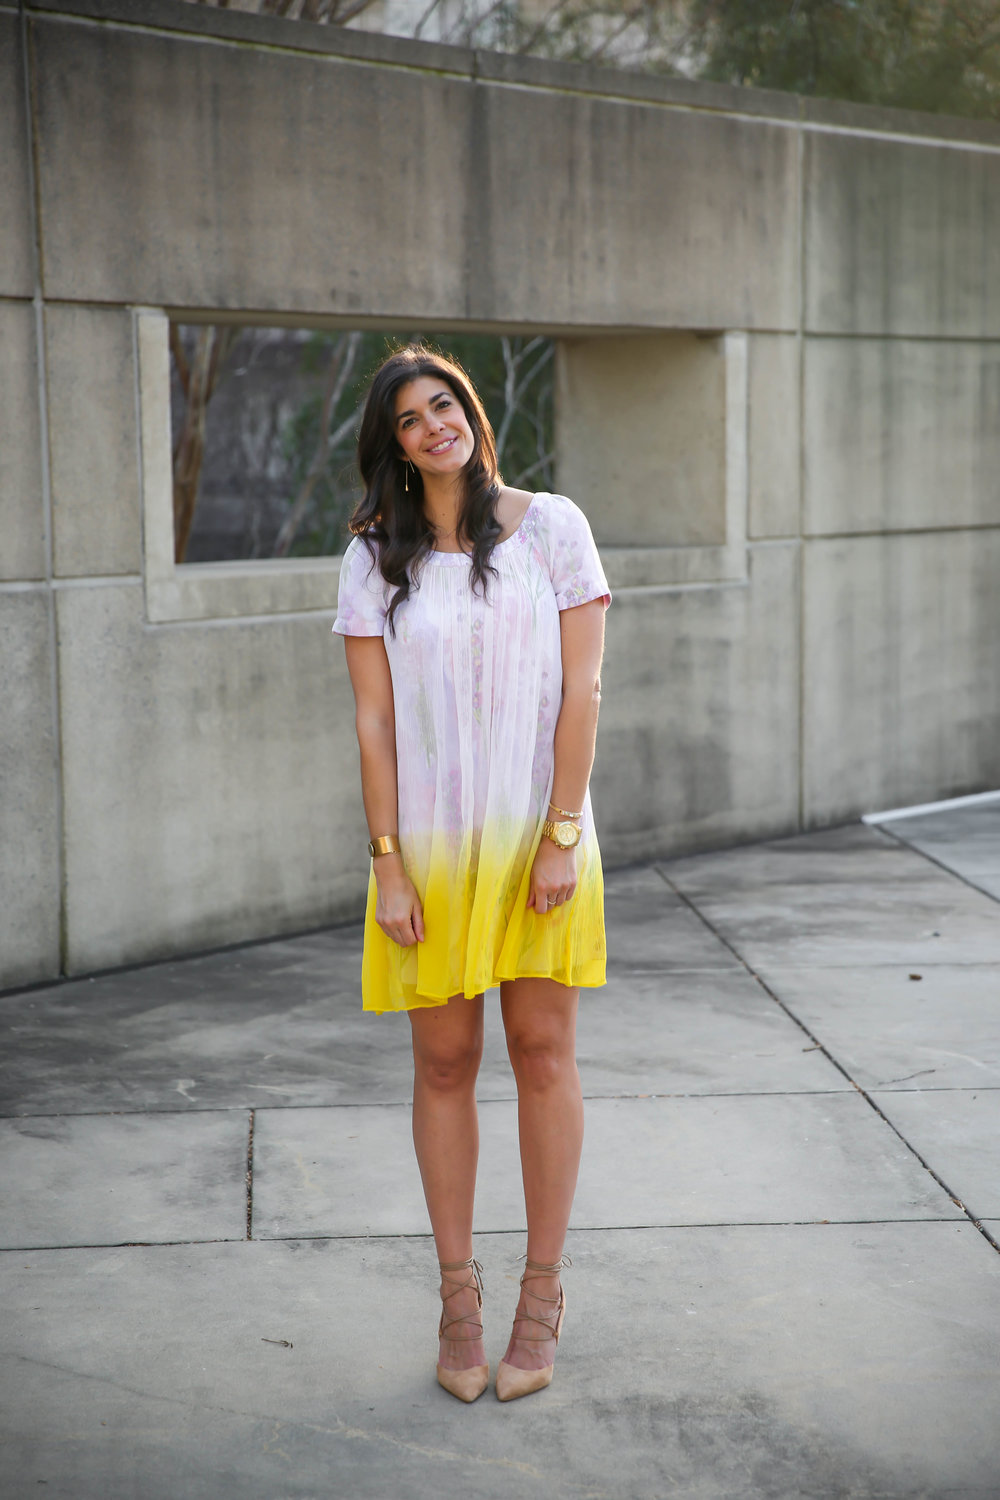 anthropologie-swing-dress-lauren-schwaiger-style-blogger.jpg